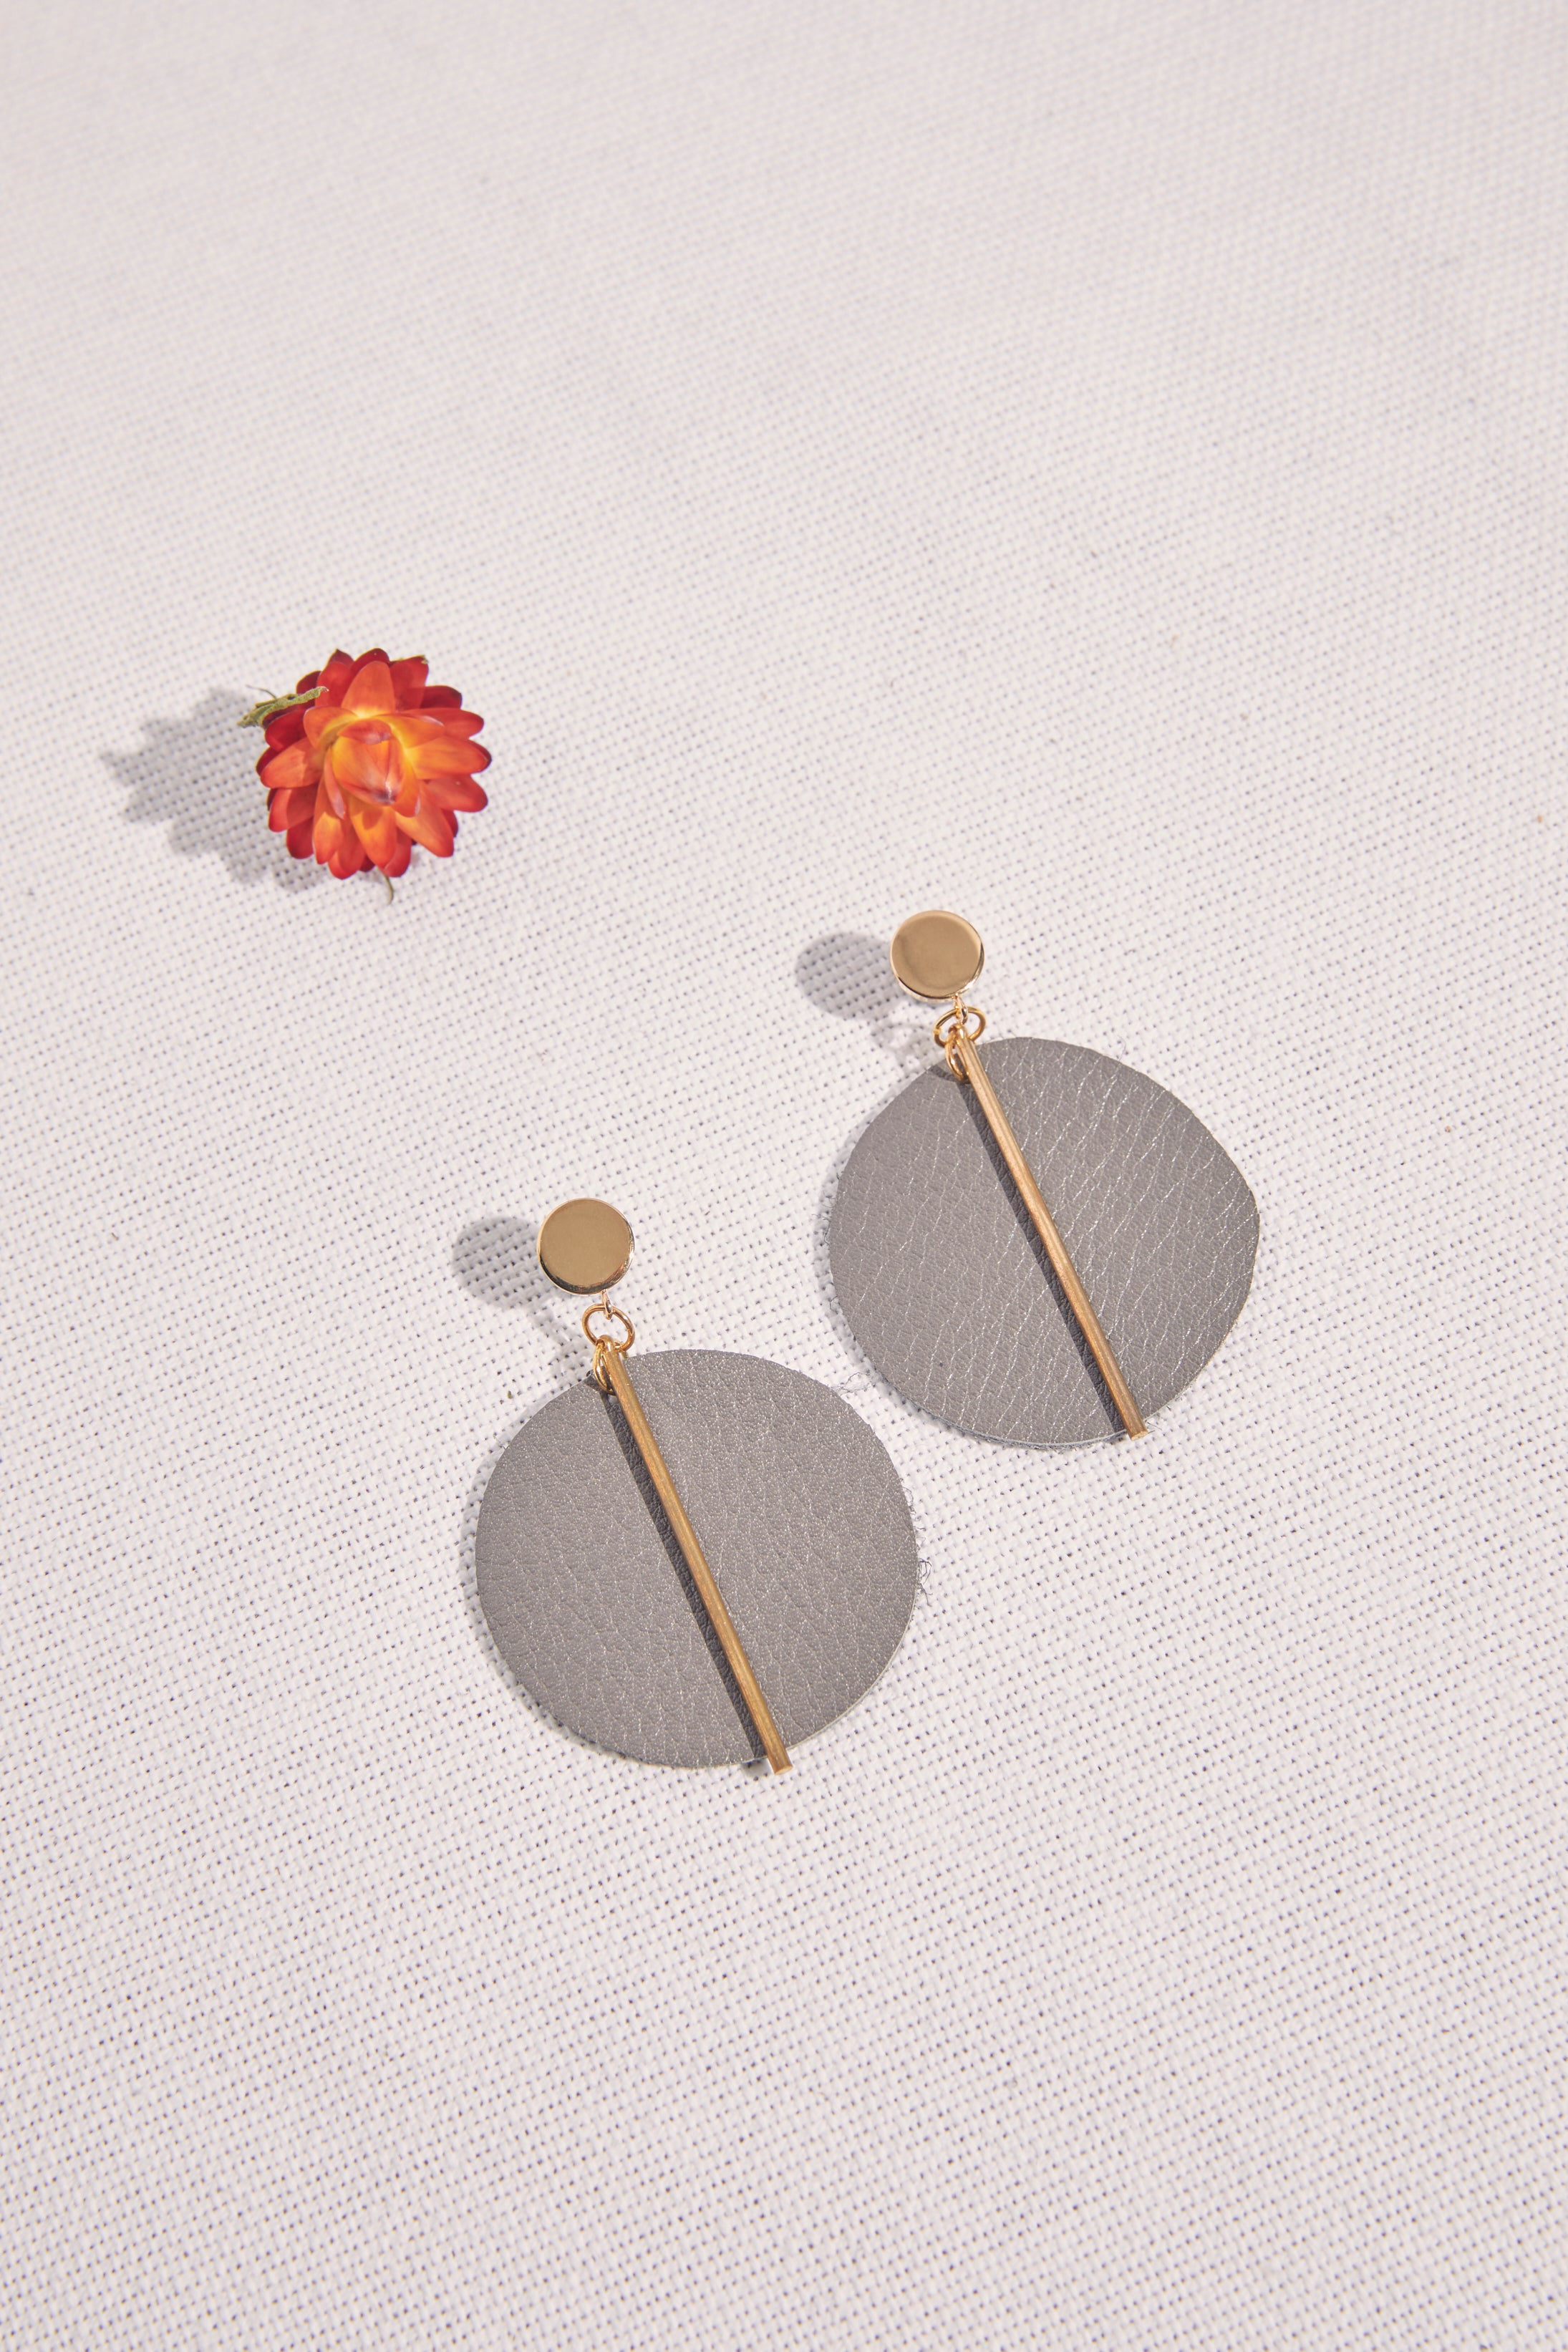 Olive Leather Circle With Brass Earring - P I C N I C